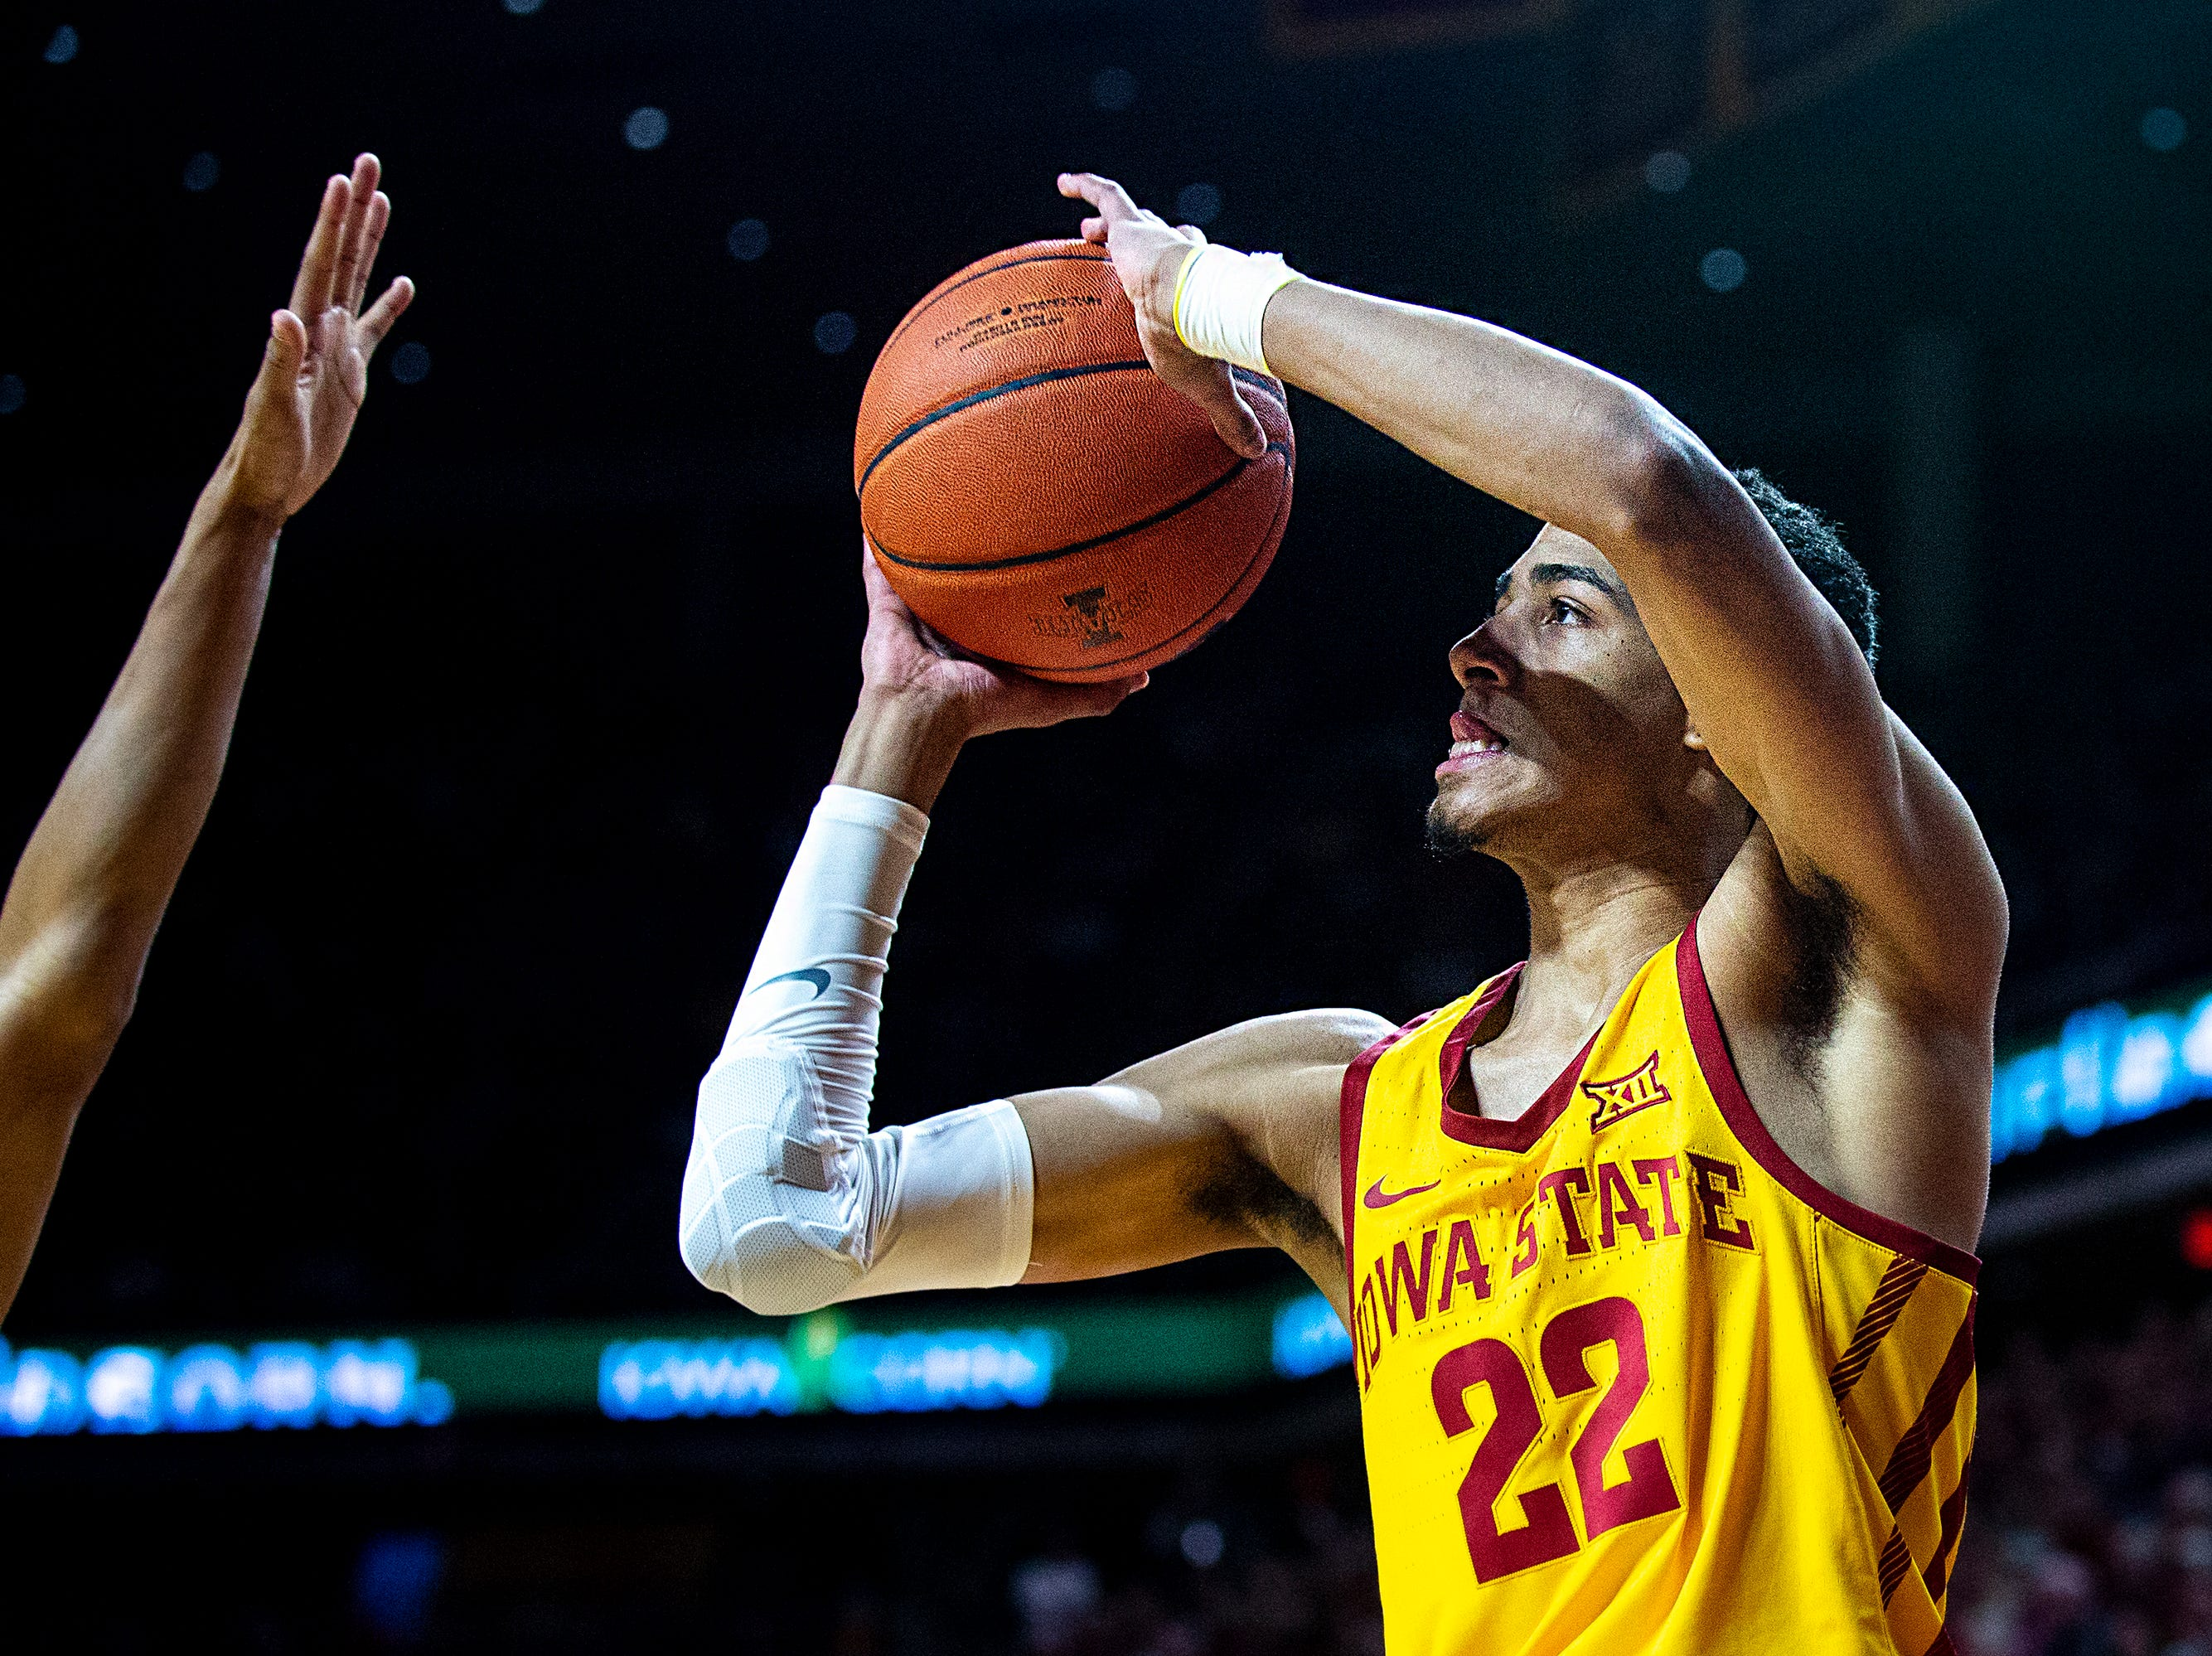 Iowa State's Tyrese Haliburton shoots a three-point shot during the Iowa State men's basketball game against Kansas State on Saturday, Jan. 12, 2019, in Hilton Coliseum.